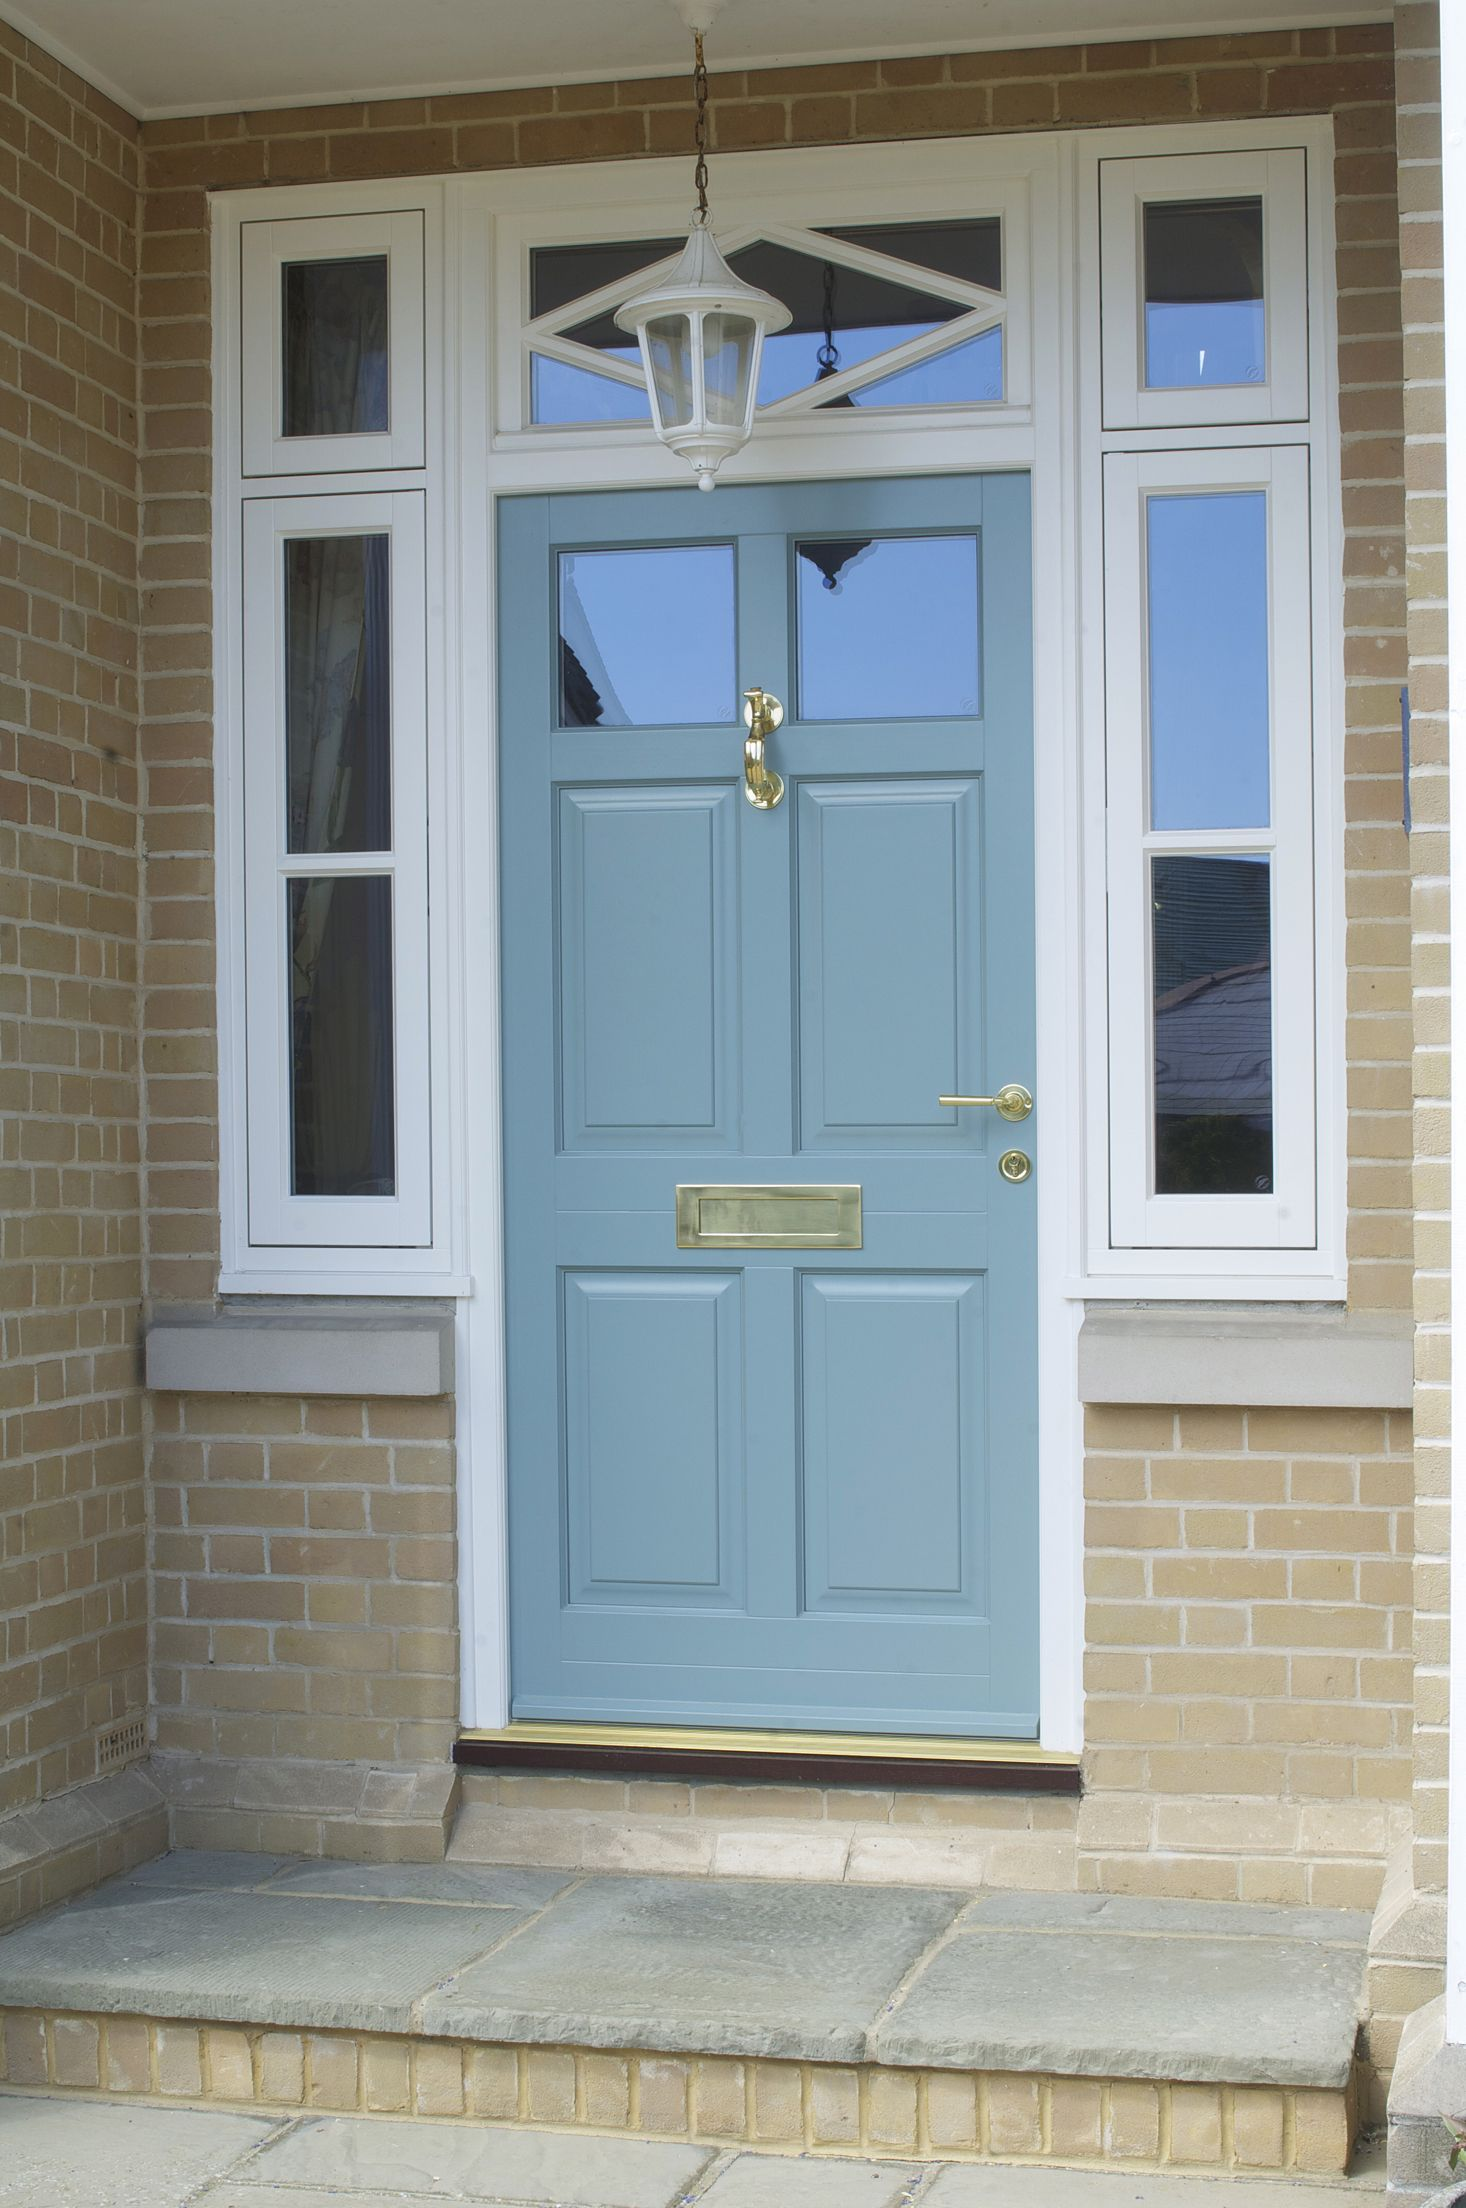 Internal doors external doors and spray finishes from oakwood doors - Classic Georgian Entrance Door And Fanlight With Side Casements Equipped With Samuel Heath Ironmongery